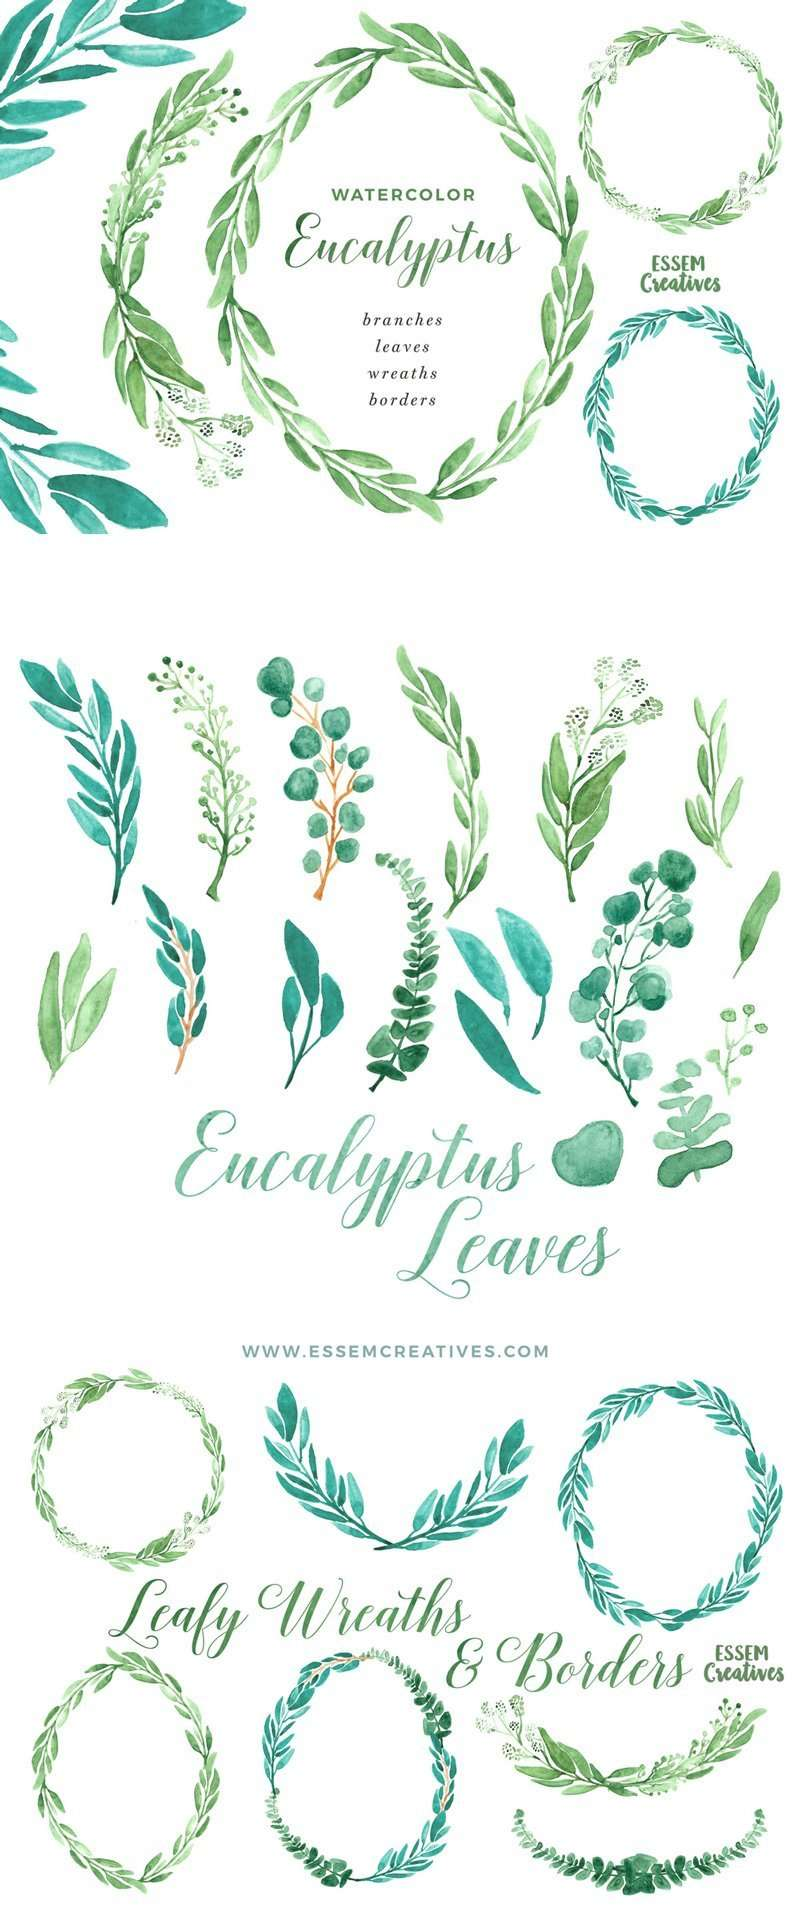 Watercolor Eucalyptus Clipart, Eucalyptus Wreaths Borders and Frames This is a set of hand painted Watercolor Eucalyptus Clipart featuring branches, wreaths, borders and frames. Eucalyptus is a super modern and trendy concept which are perfect for wedding invitations & save the date designs. Also perfect for logos & branding projects. This set includes, delicate, modern looking eucalyptus leaf graphics in stunning vibrant shades painted in a delicate, painterly style. Includes hues of sage green and teal. Click to check it out now >>